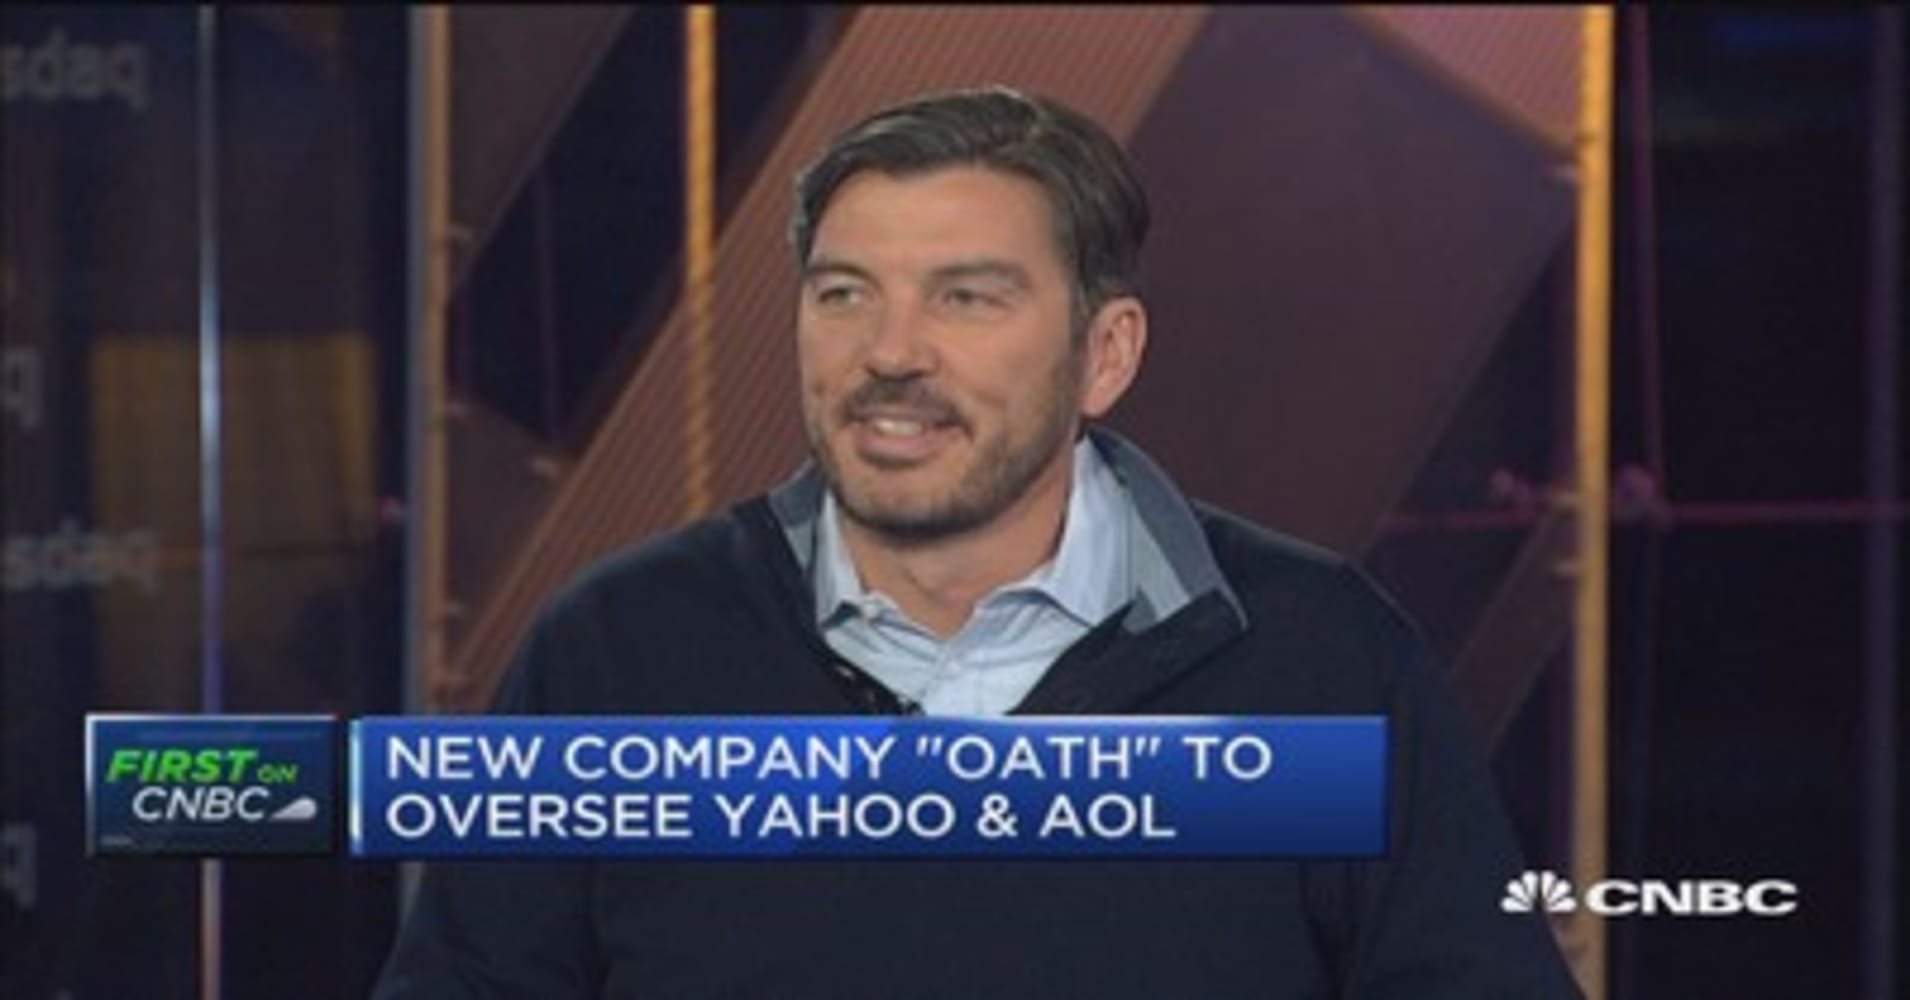 'Oath' to oversee Yahoo and AOL brand: Tim Armstrong. '